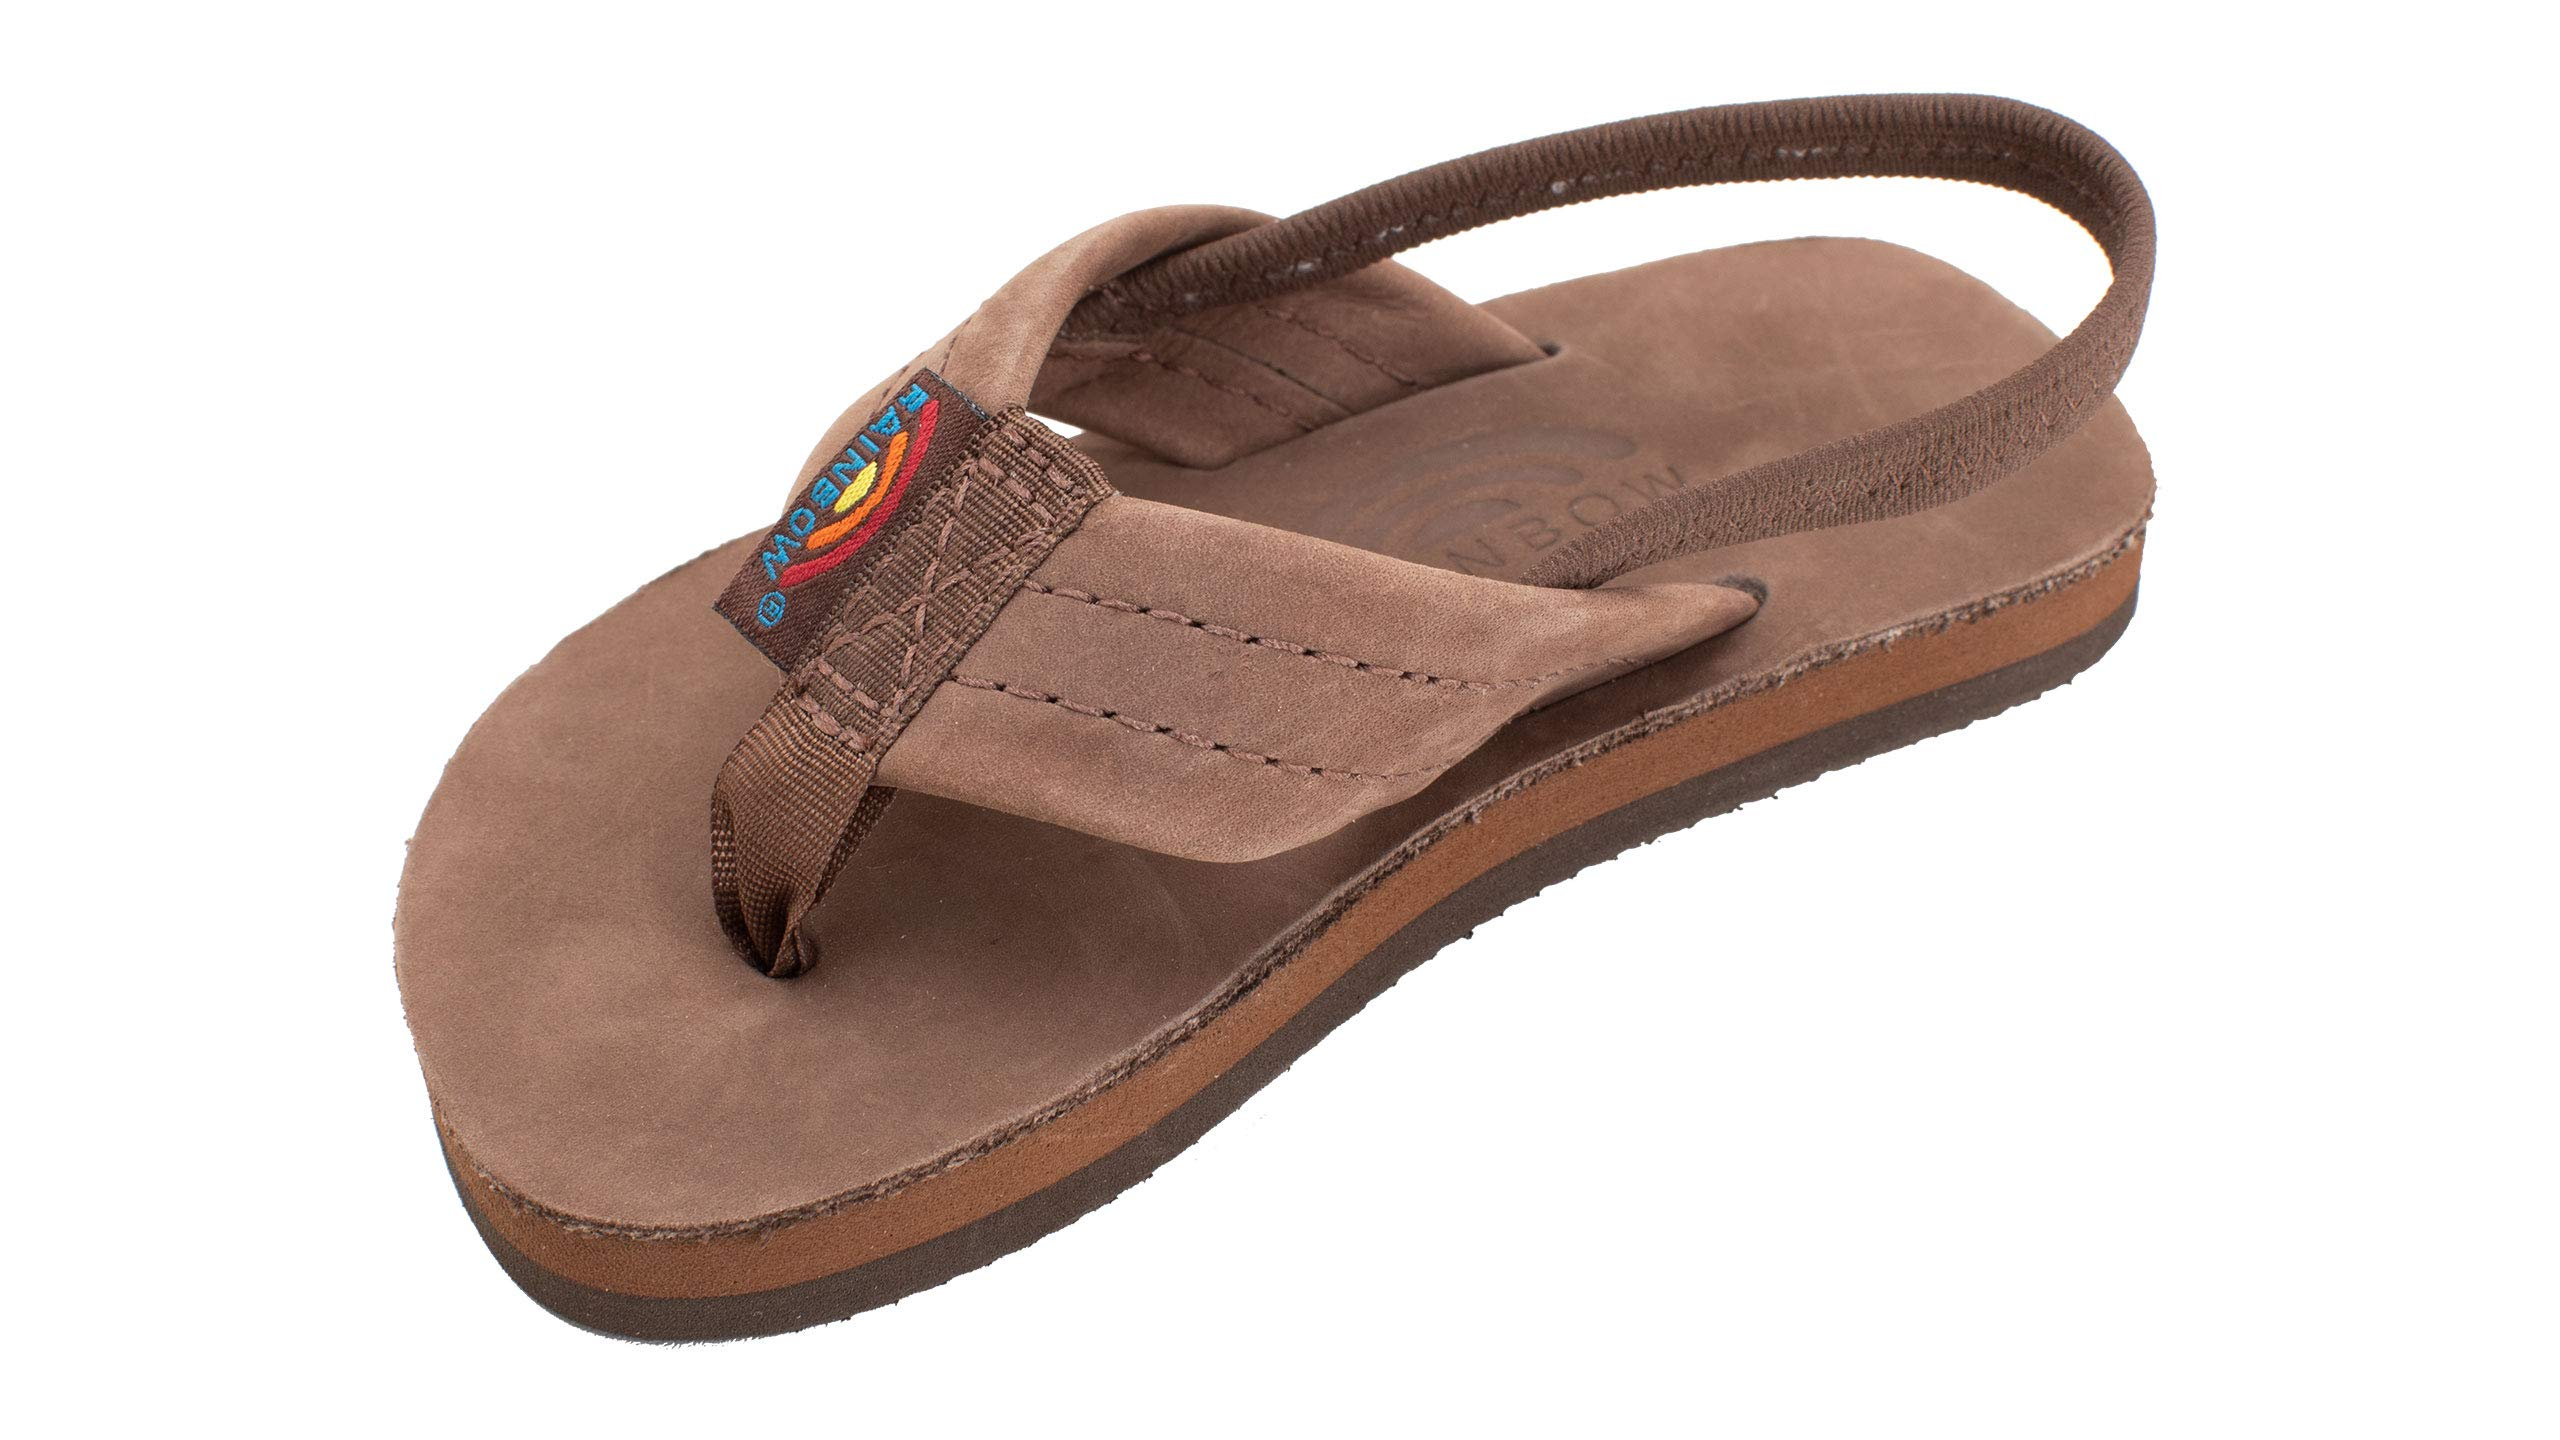 Rainbow Sandals Kid's Single Layer Premier Leather Sandals, Expresso, Toddler 7-8 B(M) US by Rainbow Sandals